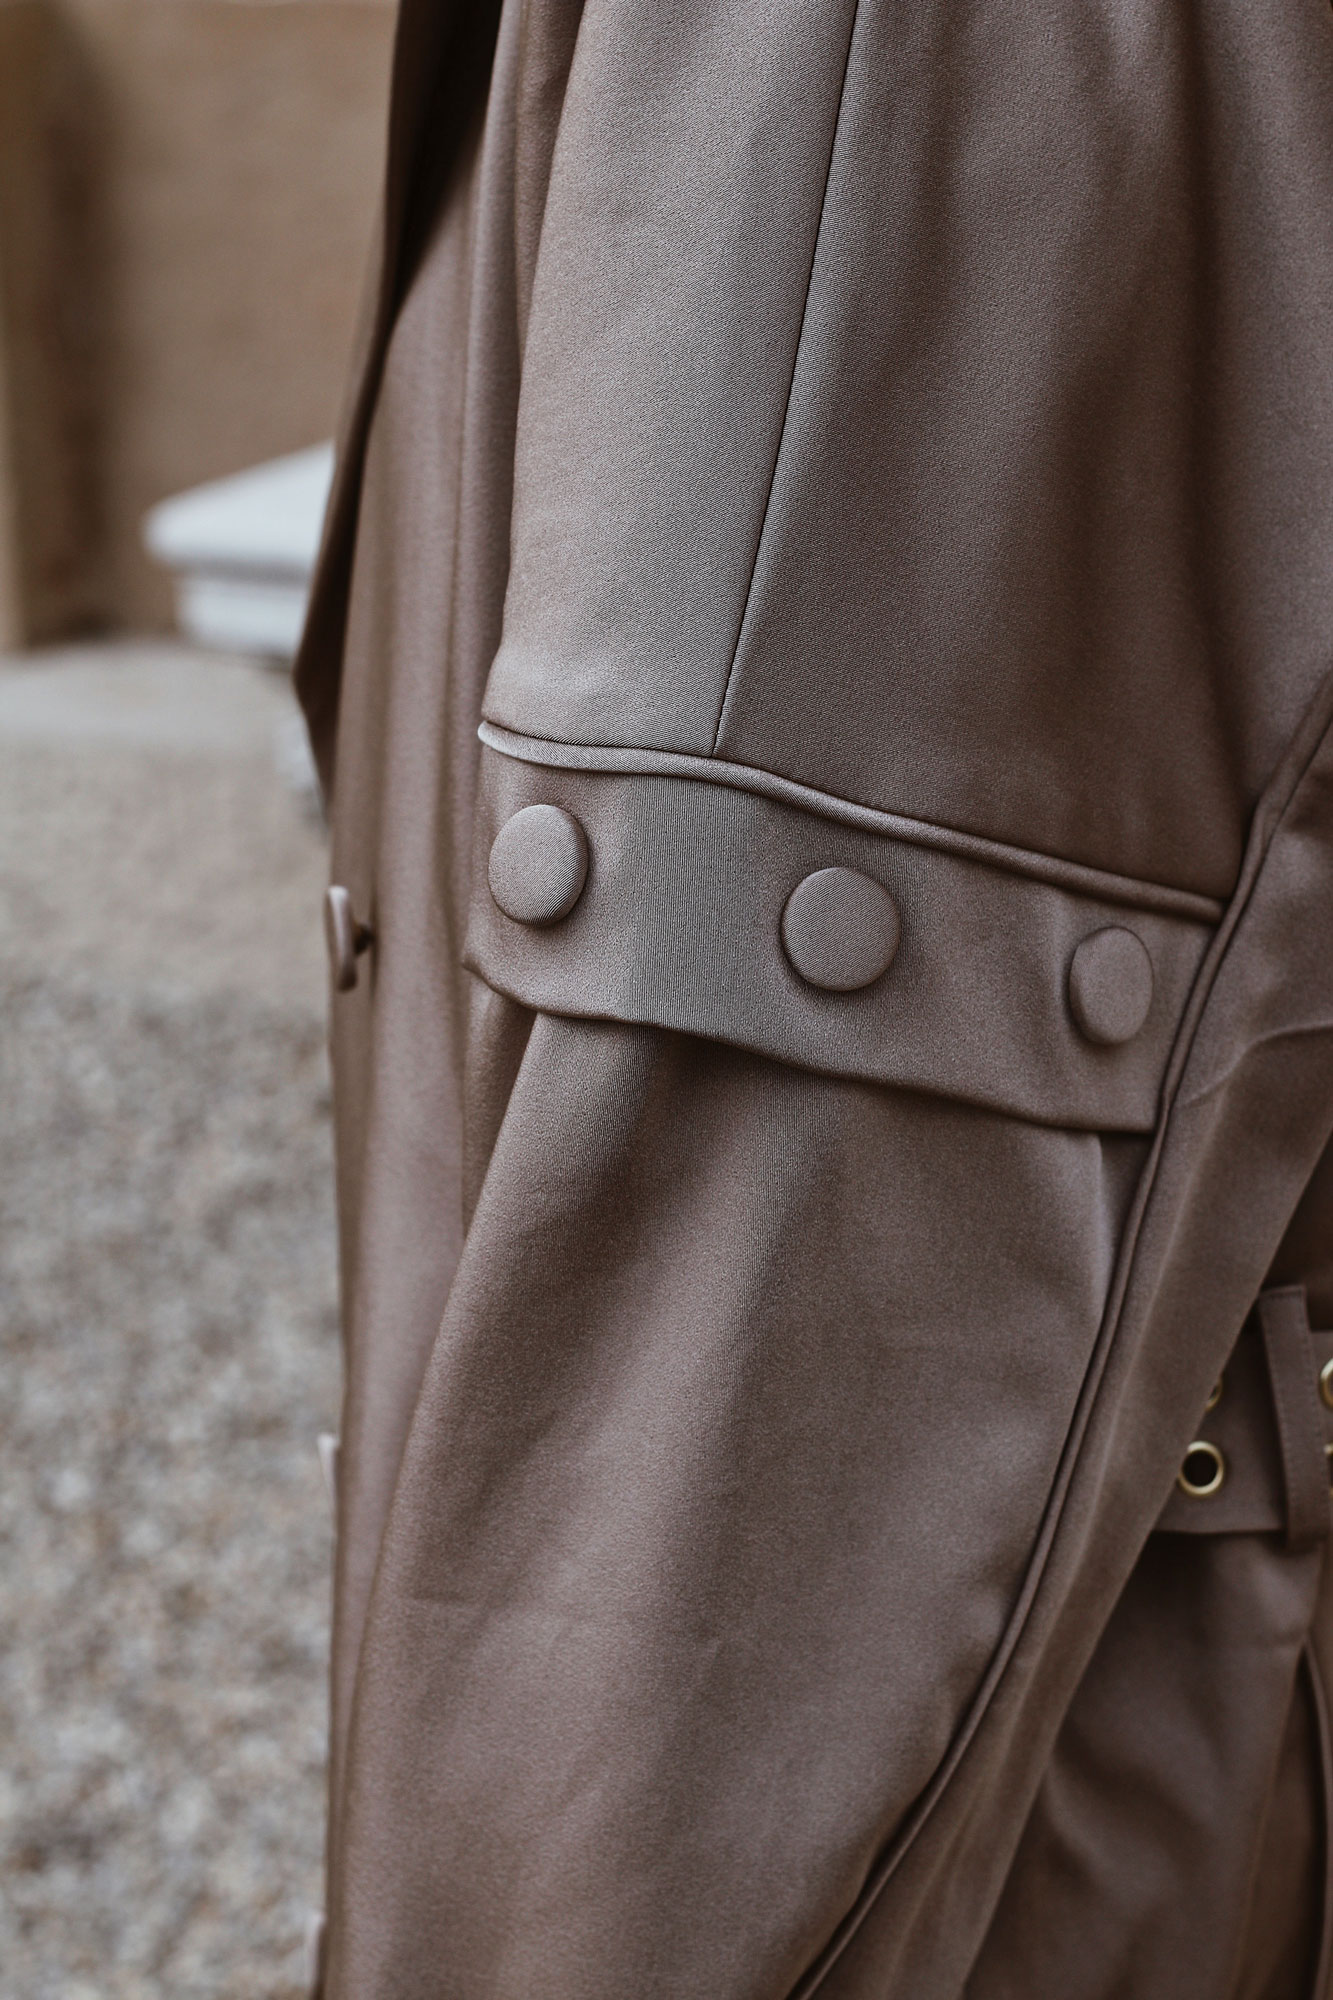 The updated Trenchcoat - lesfactoryfemmes.com